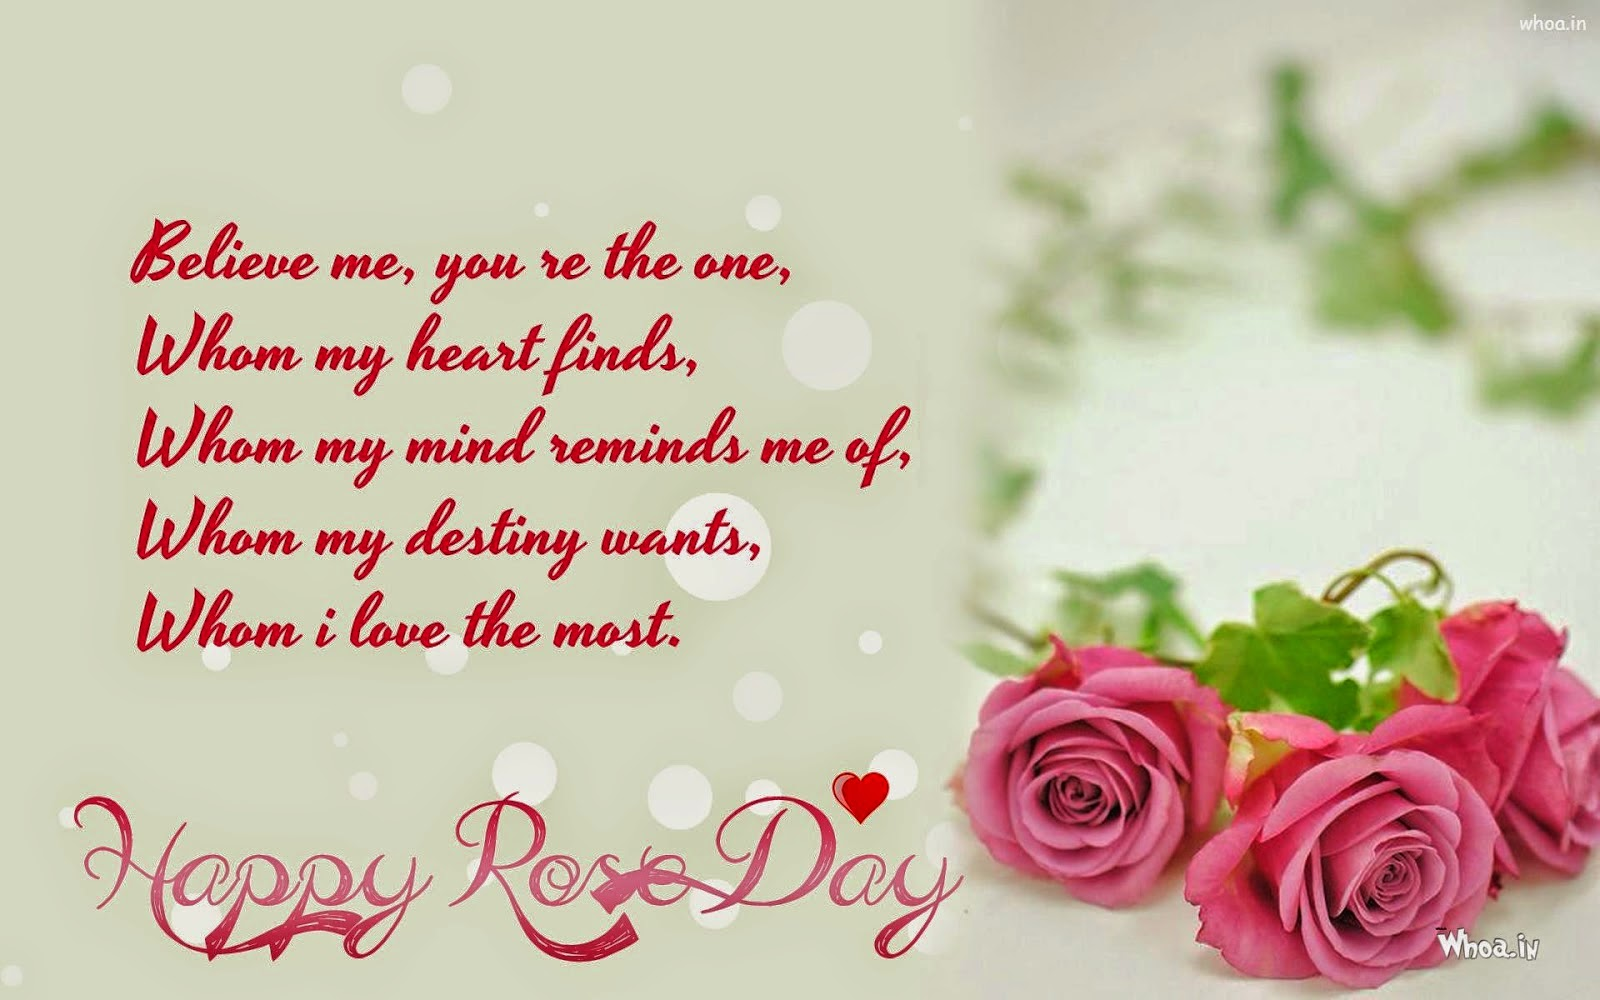 Rose Day 2019 Images - Boyfriend Rose Day Quotes , HD Wallpaper & Backgrounds